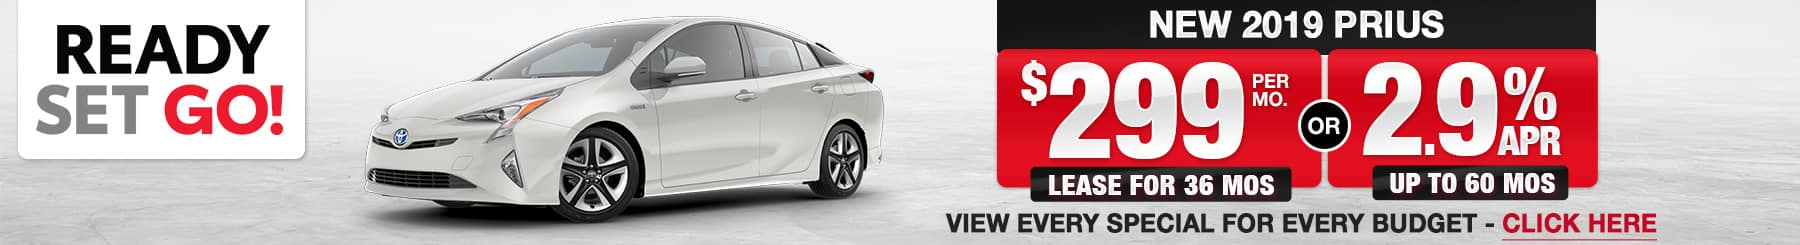 2019 Prius Lease or Finance Offers